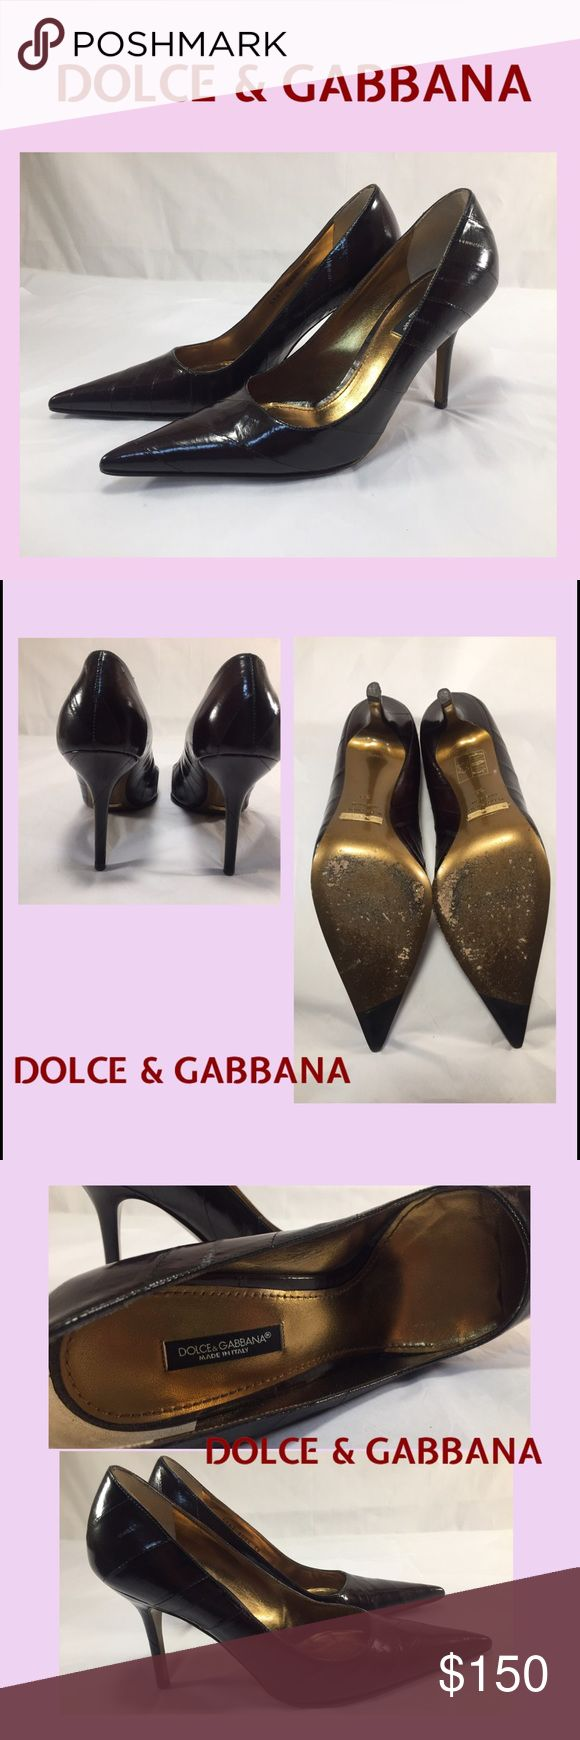 DOLCE & GABBANA Gorgeous Deep Burgundy Heels DOLCE & GABBANA Gorgeous Deep Burgundy Heels in Ladies Size 38. Beautiful preowned condition with mild to moderate wear on soles, but little to no wear on rest of shoes. Heel caps look great, and shoes are in lovely condition.  Orig. $485.00. Dolce & Gabbana Shoes Heels